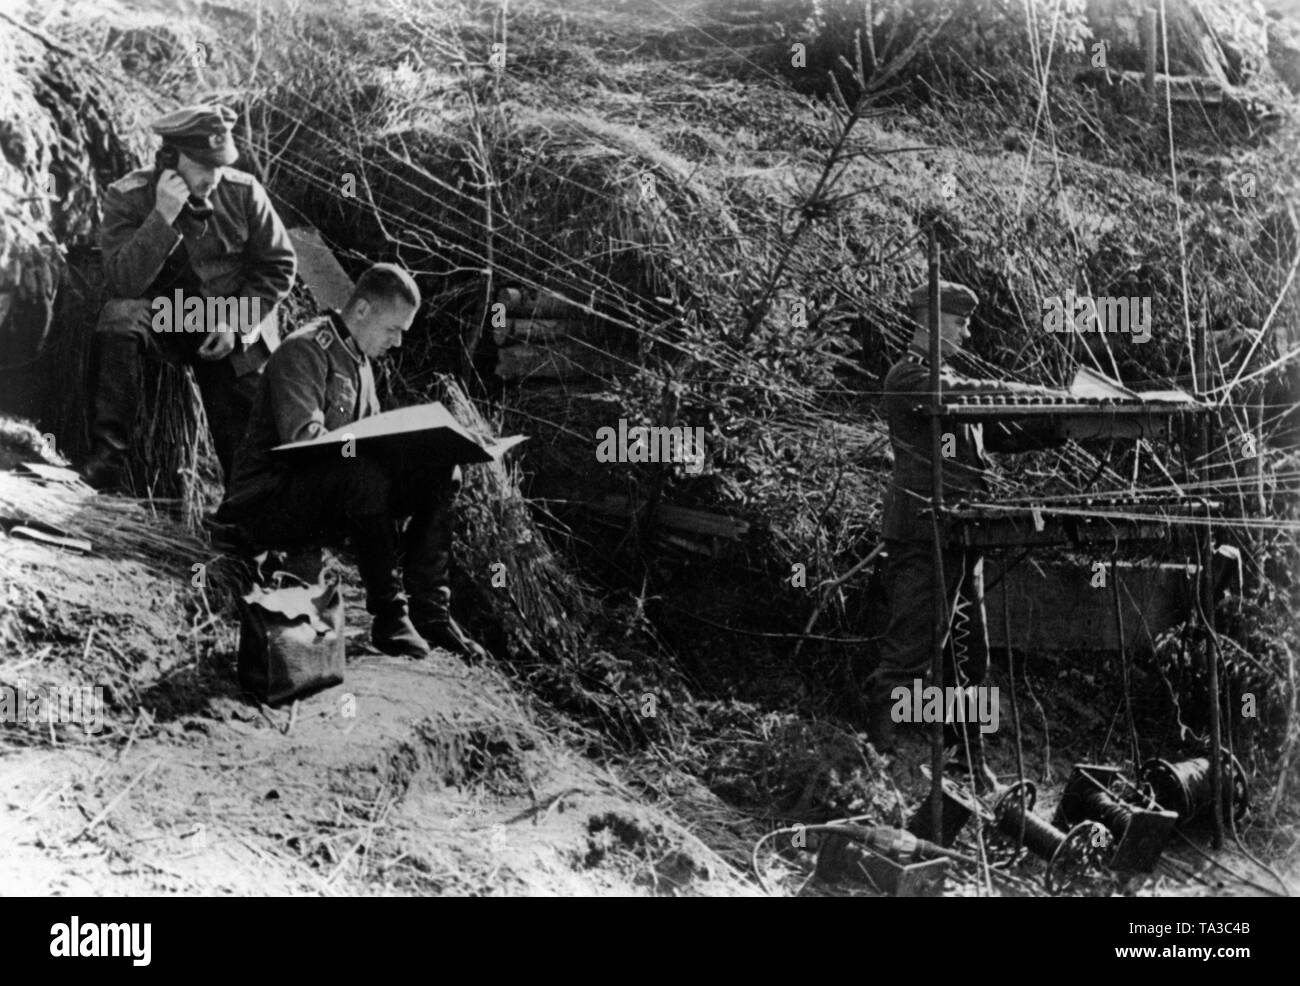 Command post of the Wehrmacht during Operation Typhoon in early October 1941. The goal of this operation was the conquest of Moscow. The picture shows radio wires connecting the general staff to the front. Left in the picture two officers. Photo: war reporter Sepp Jaeger. Stock Photo